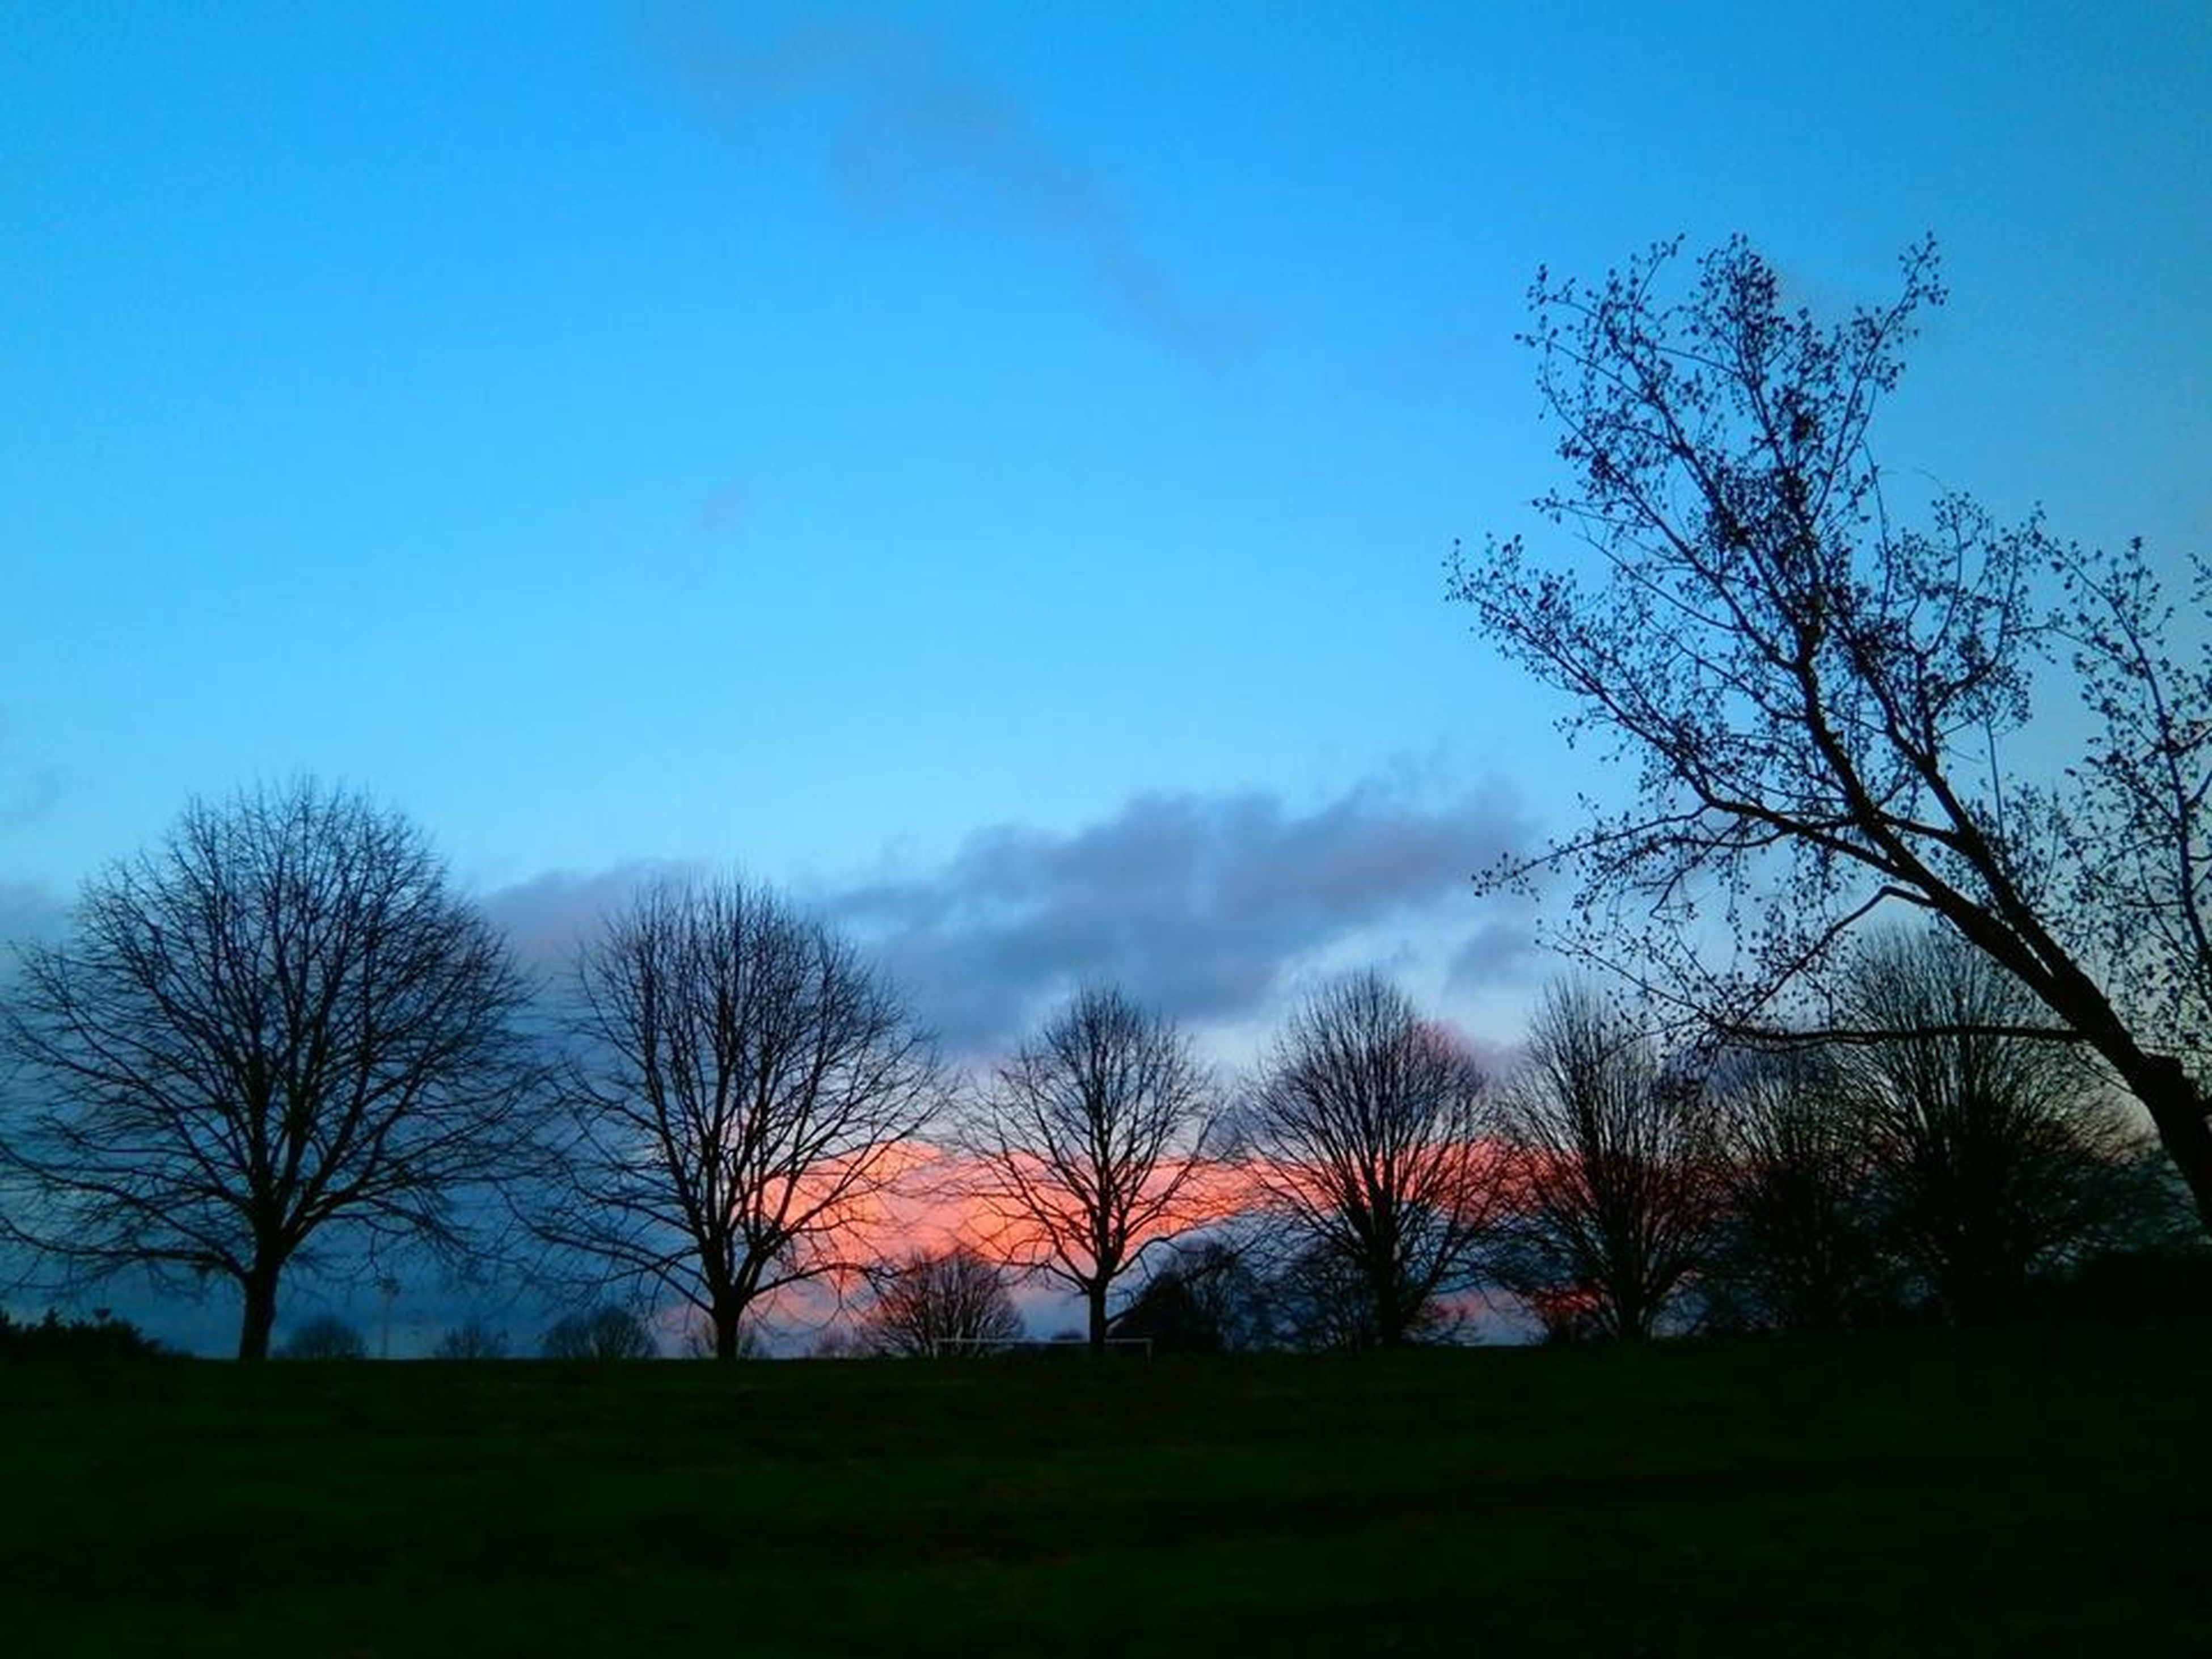 bare tree, tree, silhouette, tranquility, tranquil scene, scenics, sky, landscape, beauty in nature, branch, blue, field, nature, copy space, clear sky, dusk, sunset, non-urban scene, outdoors, no people